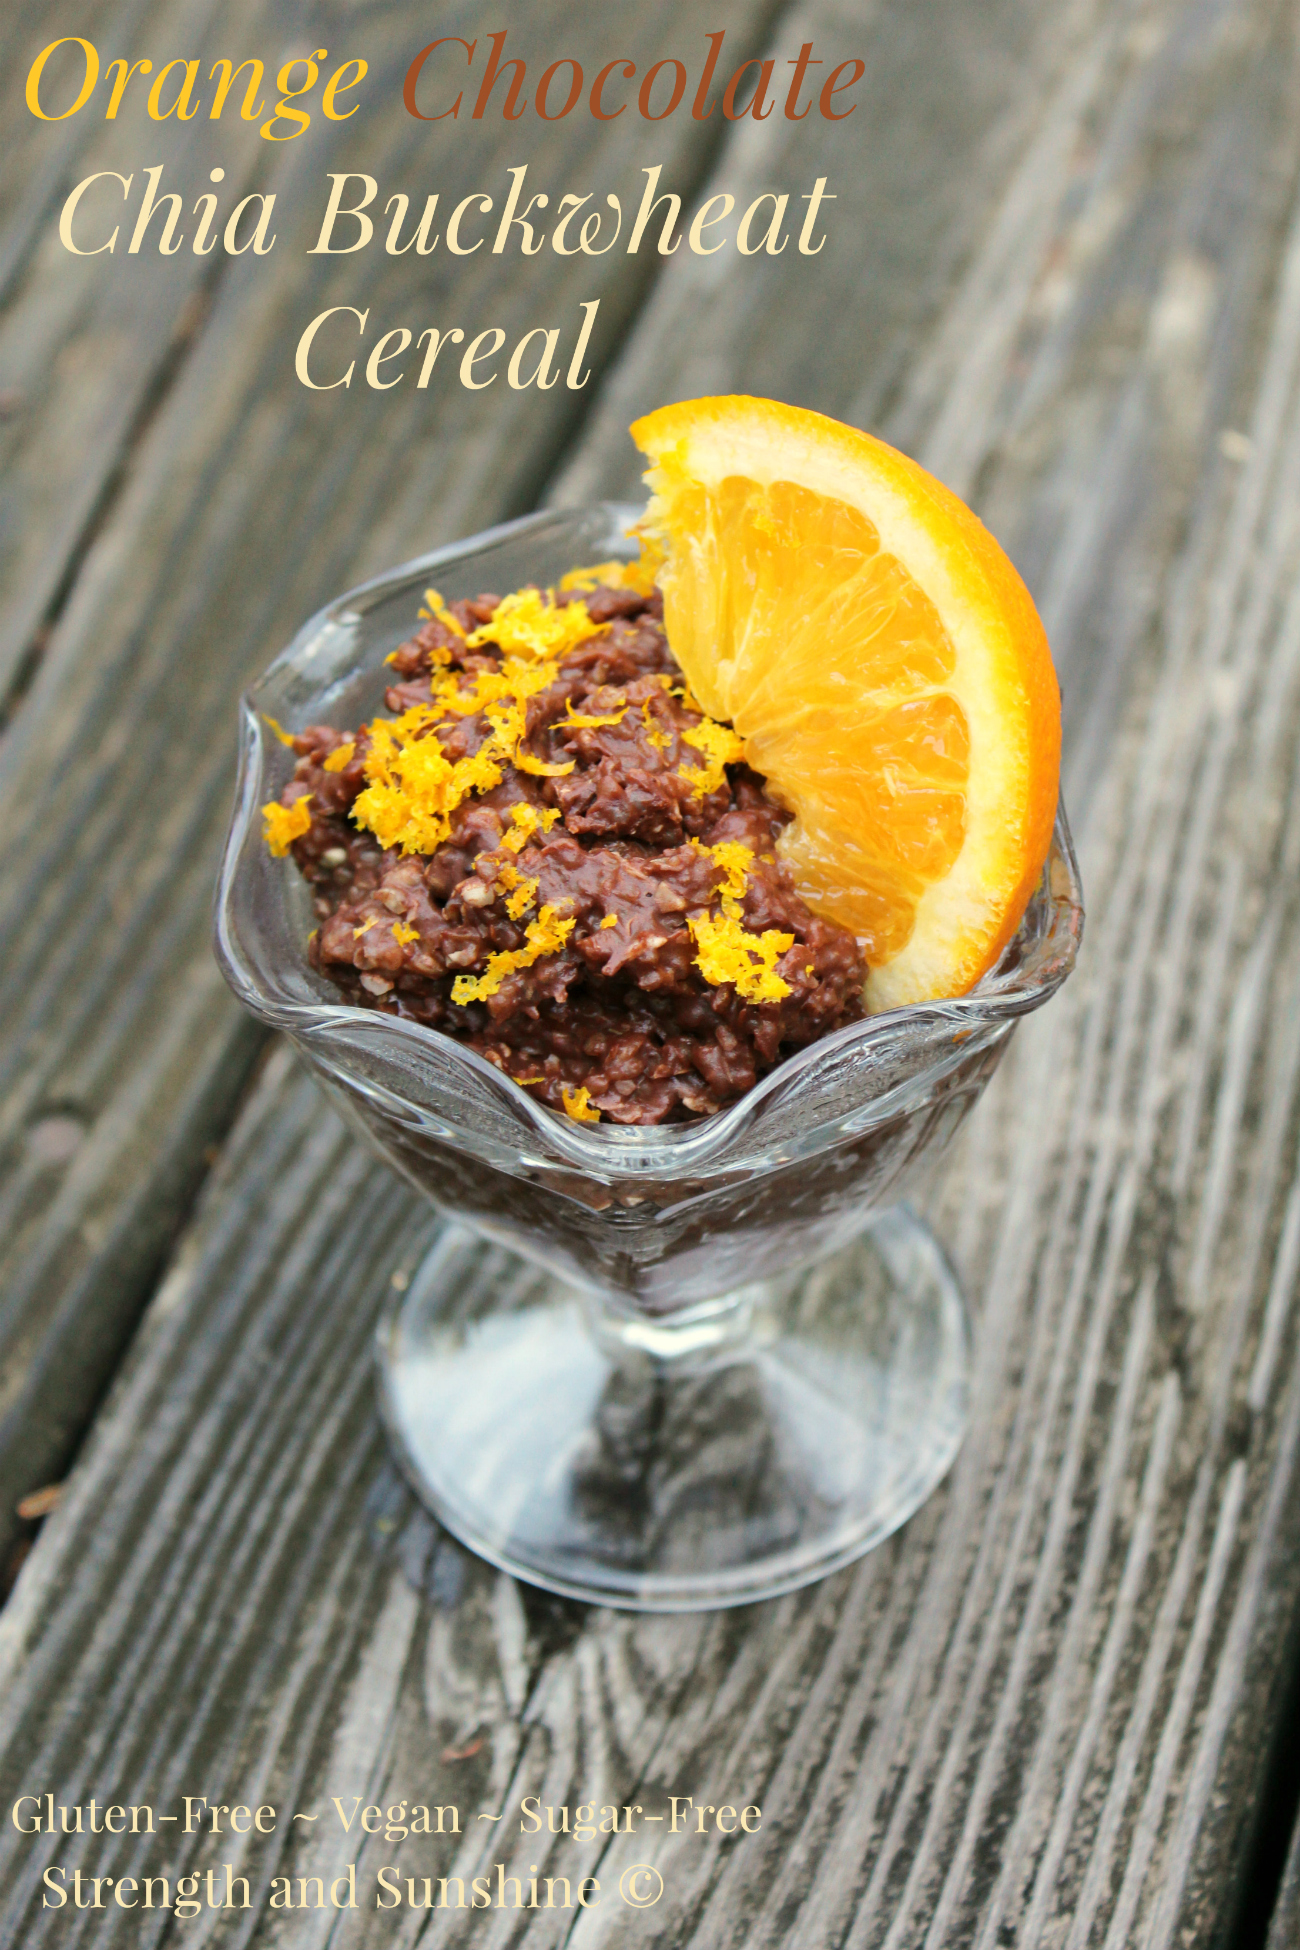 Orange Chocolate Chia Buckwheat Cereal | Strength and Sunshine @RebeccaGF666 #breakfast #buckwheat #chocolate #orange #glutenfree #vegan